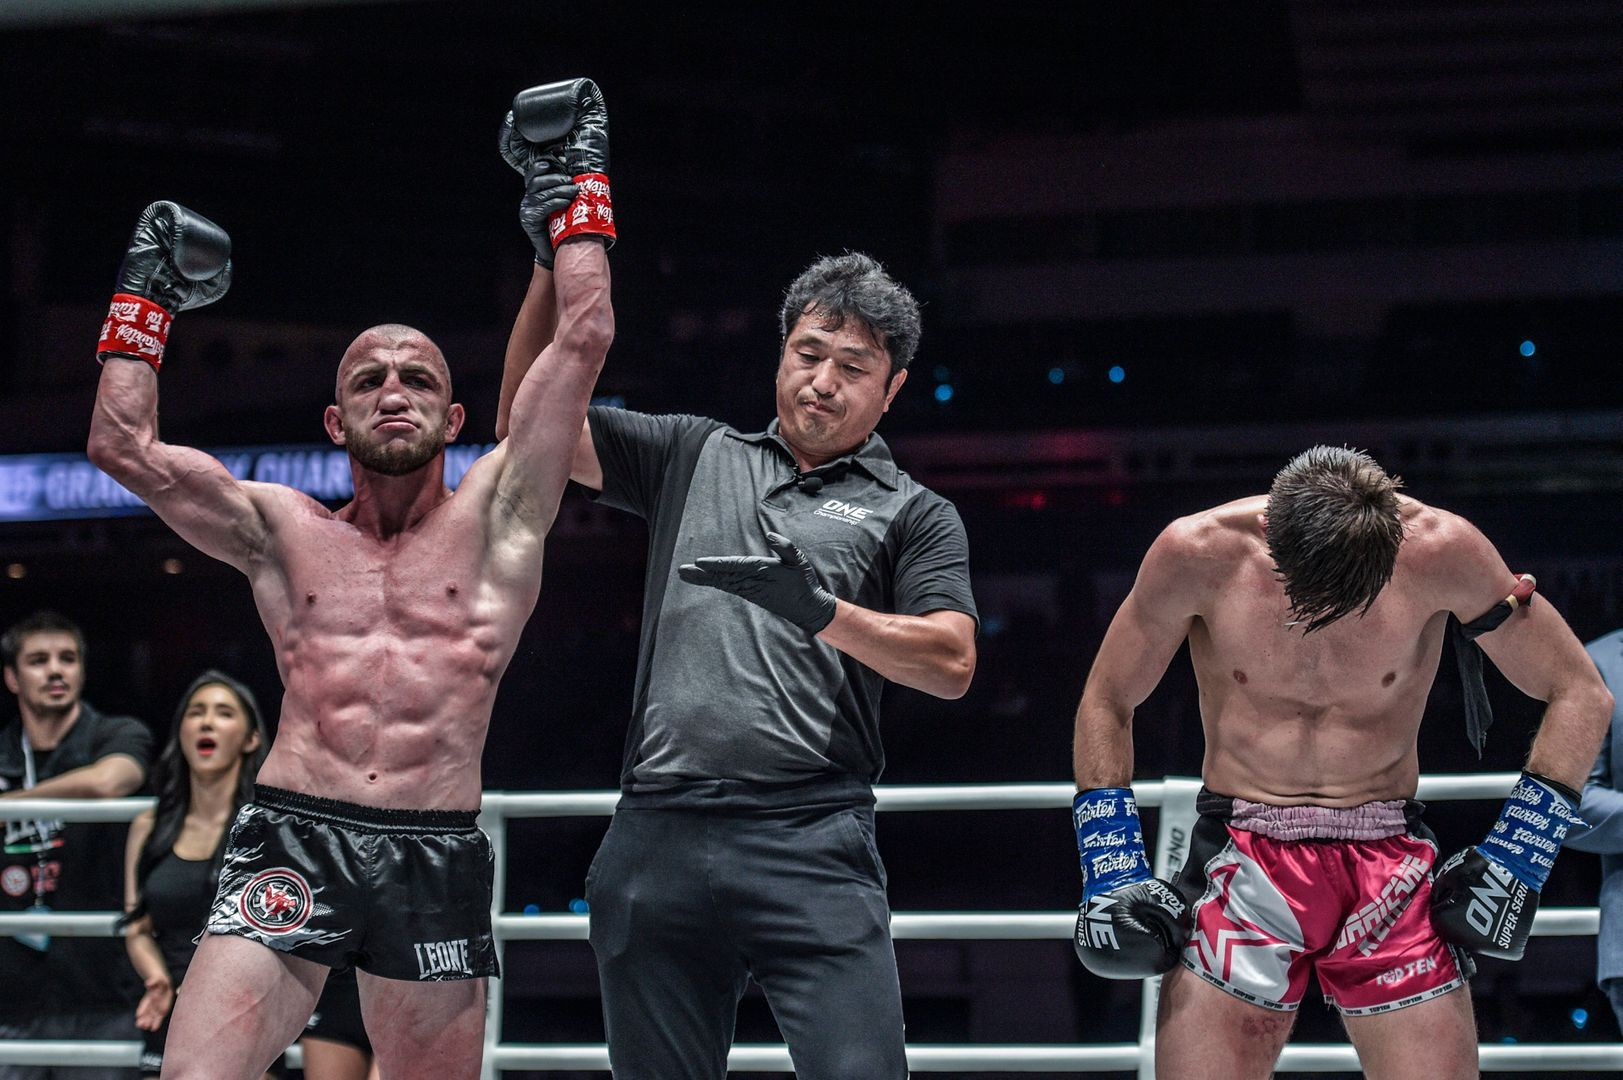 Dzhabar Askerov defeats Enriko Kehl via decision in the ONE Super Series Featherweight Kickboxing World Grand Prix at ONE: ENTER THE DRAGON in Singapore